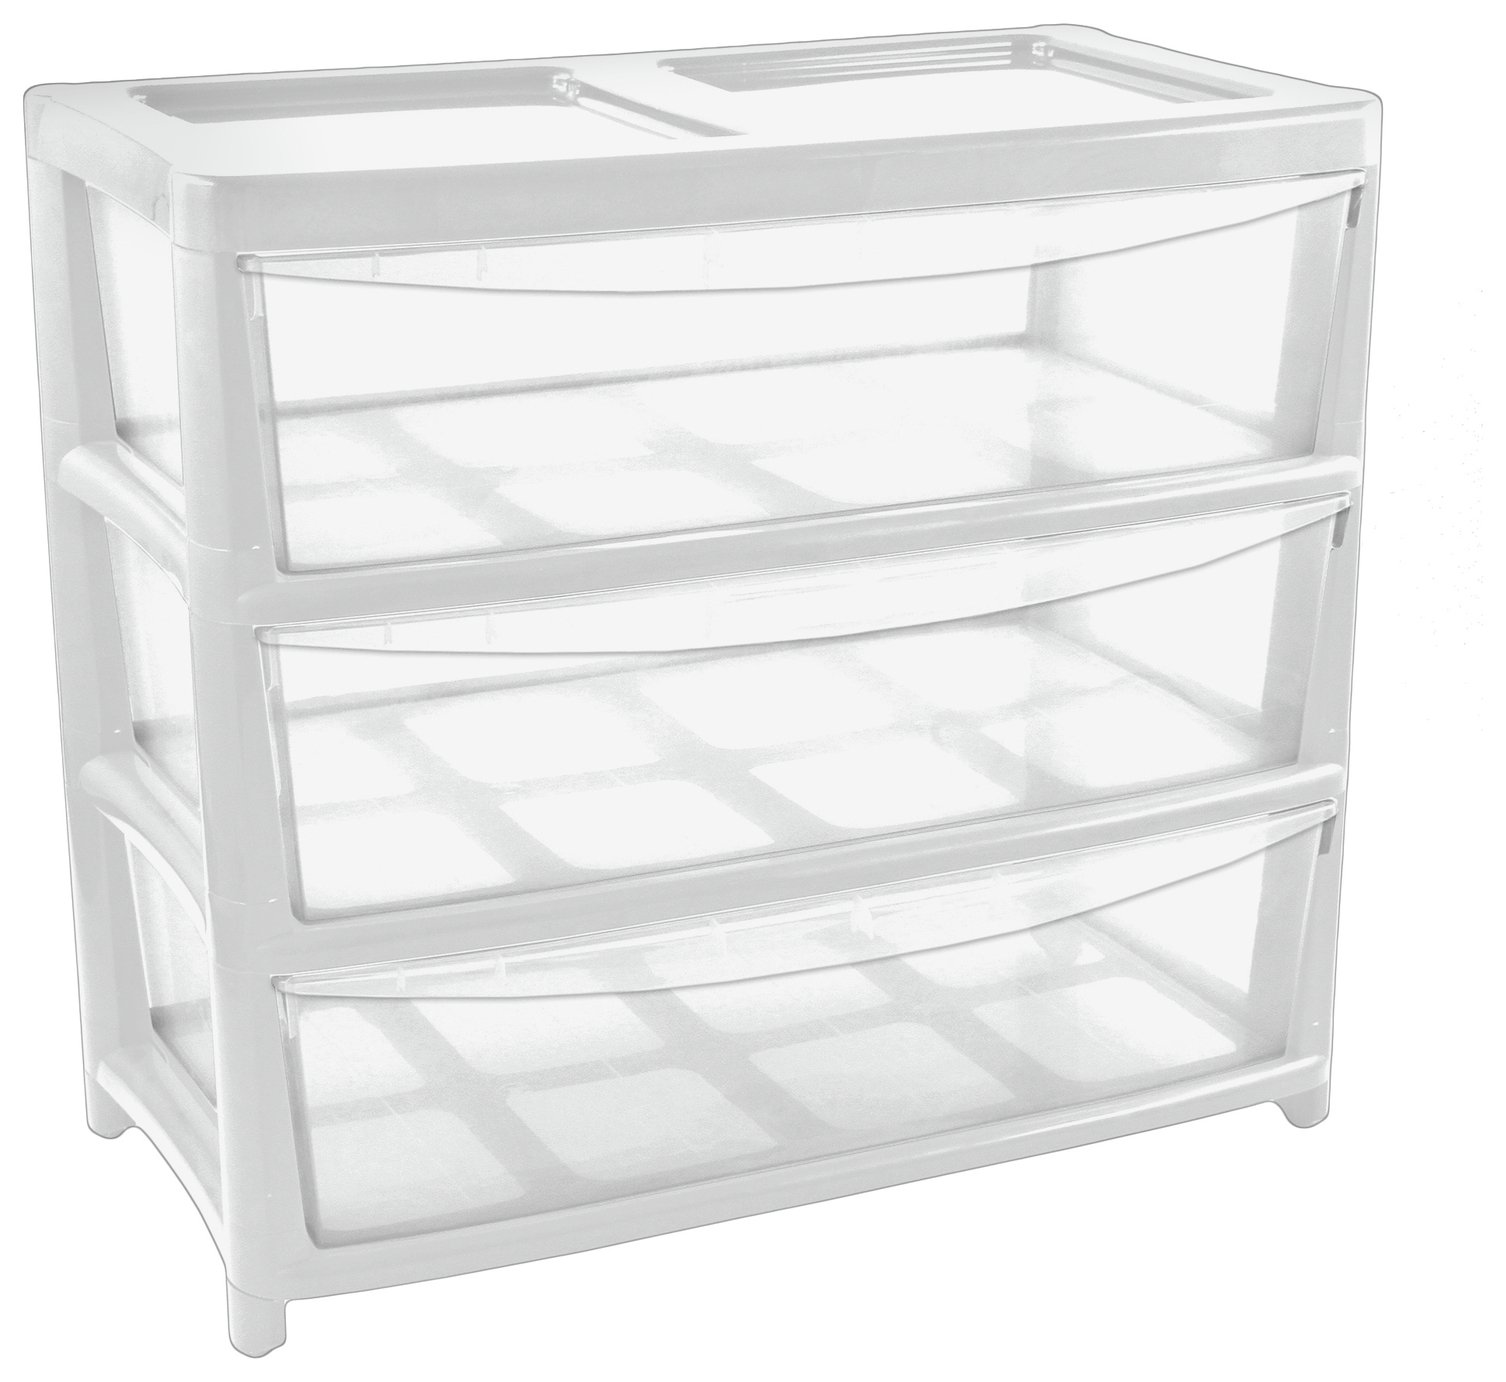 'Home 3 Drawer Gloss Plastic Wide Tower Storage Unit - White